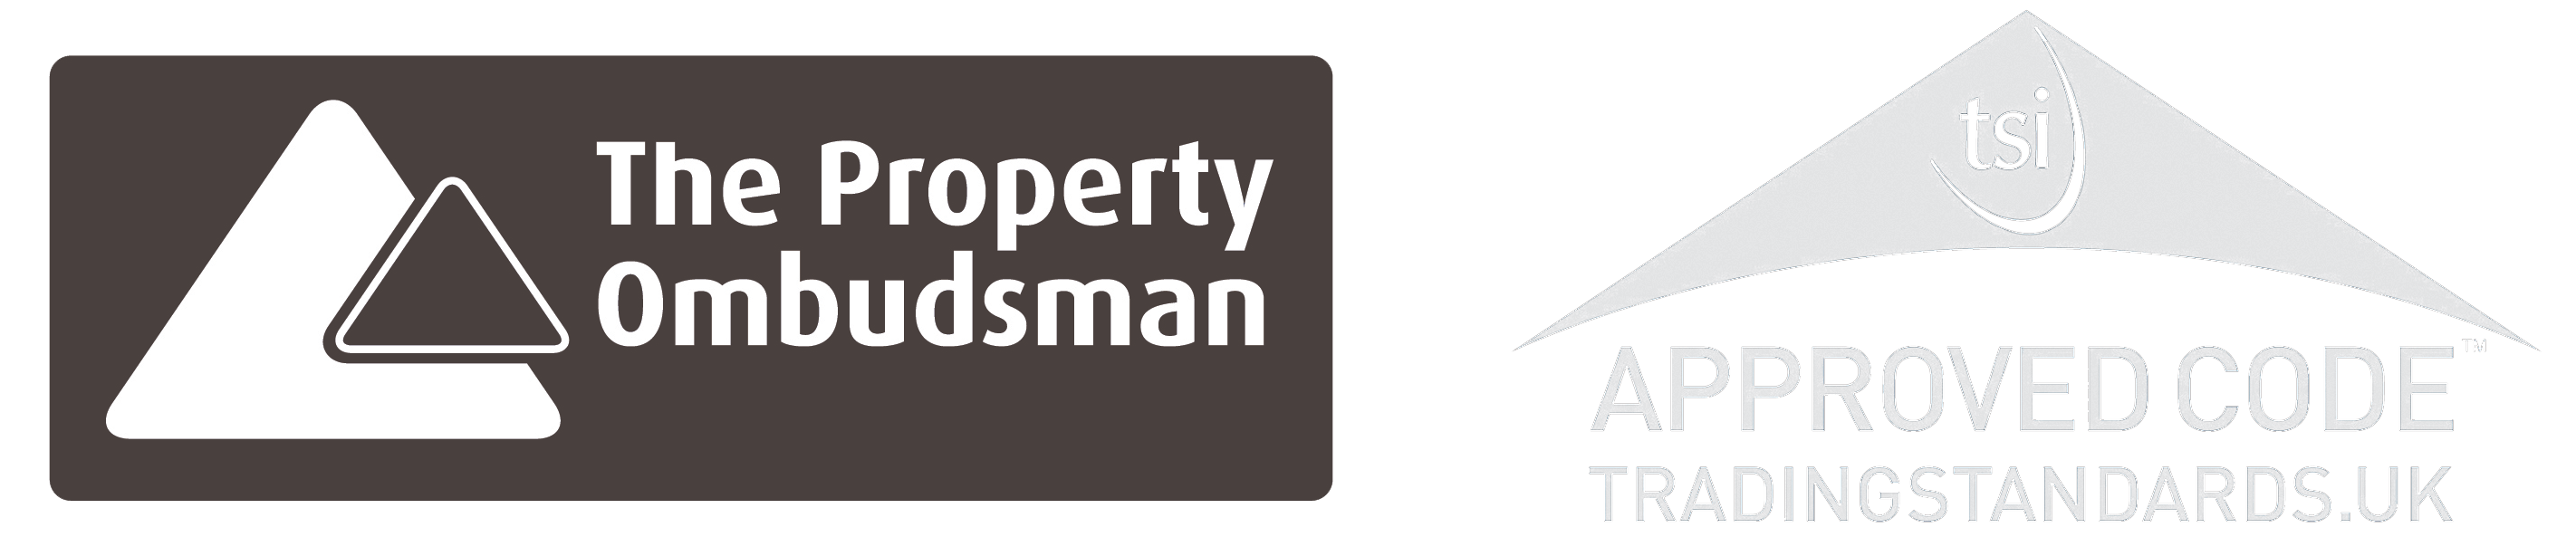 property ombudsman and trading standards